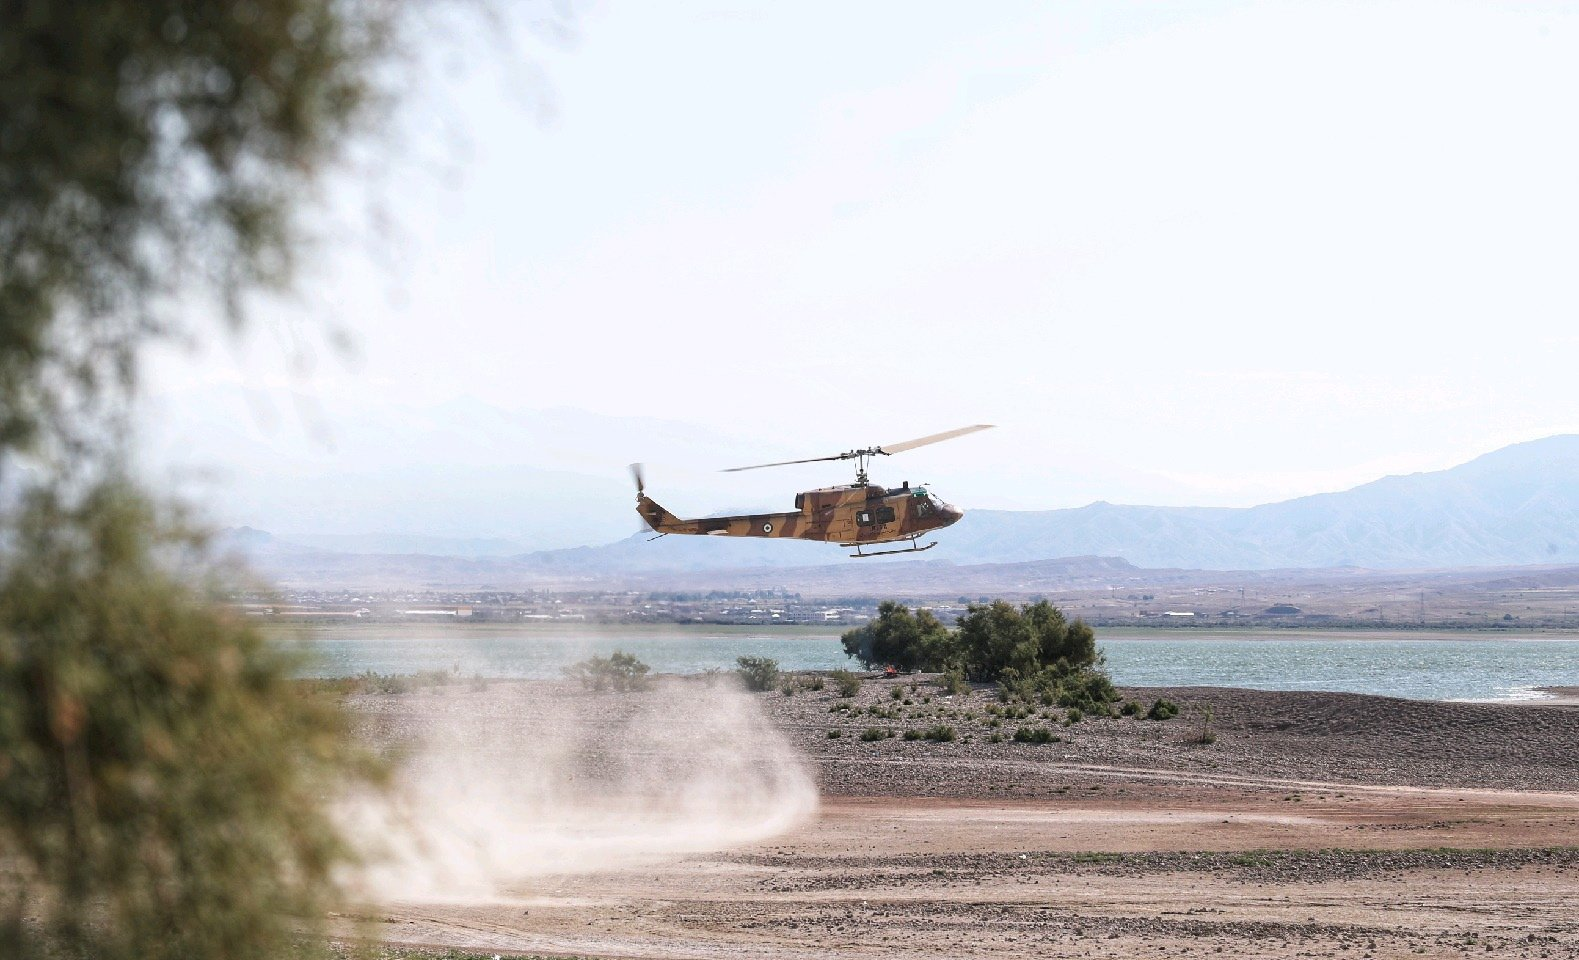 An Iranian Army helicopter during an exercise in the northwest of Iran, close to the border with Azerbaijan, Oct. 1, 2021. (EPA Photo)